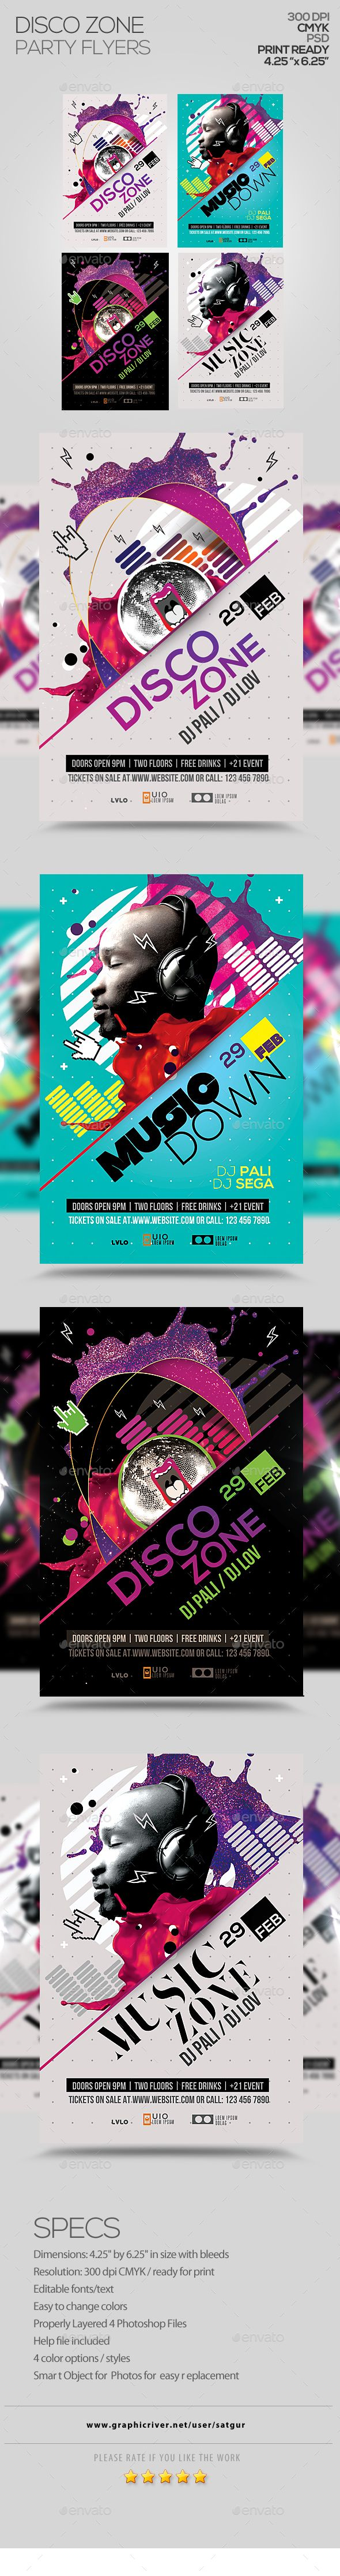 Disco Zone Party Flyer Template PSD #design Download: http://graphicriver.net/item/disco-zone-party-flyer/14489253?ref=ksioks